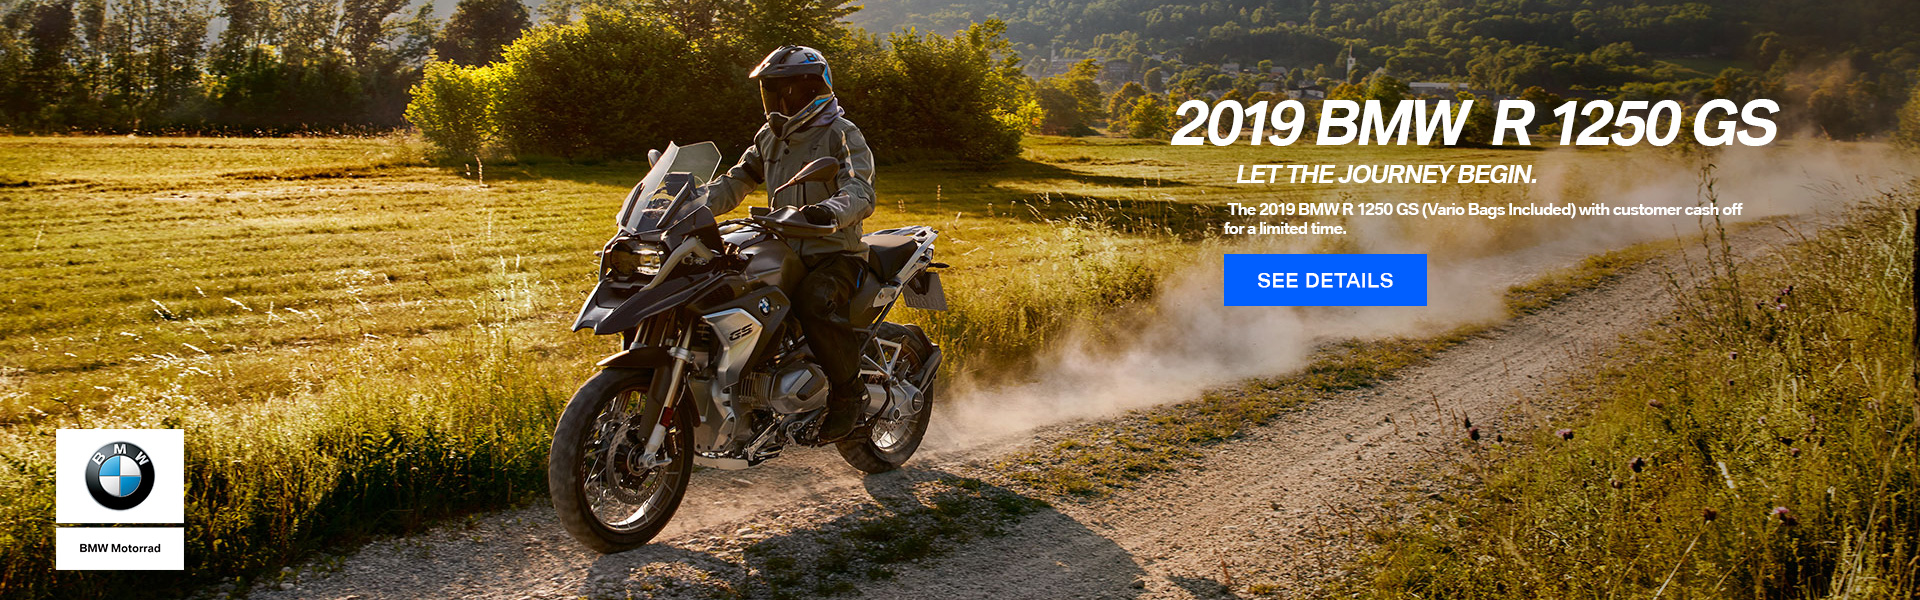 2019 BMW R1250 GS Vario Bags Included